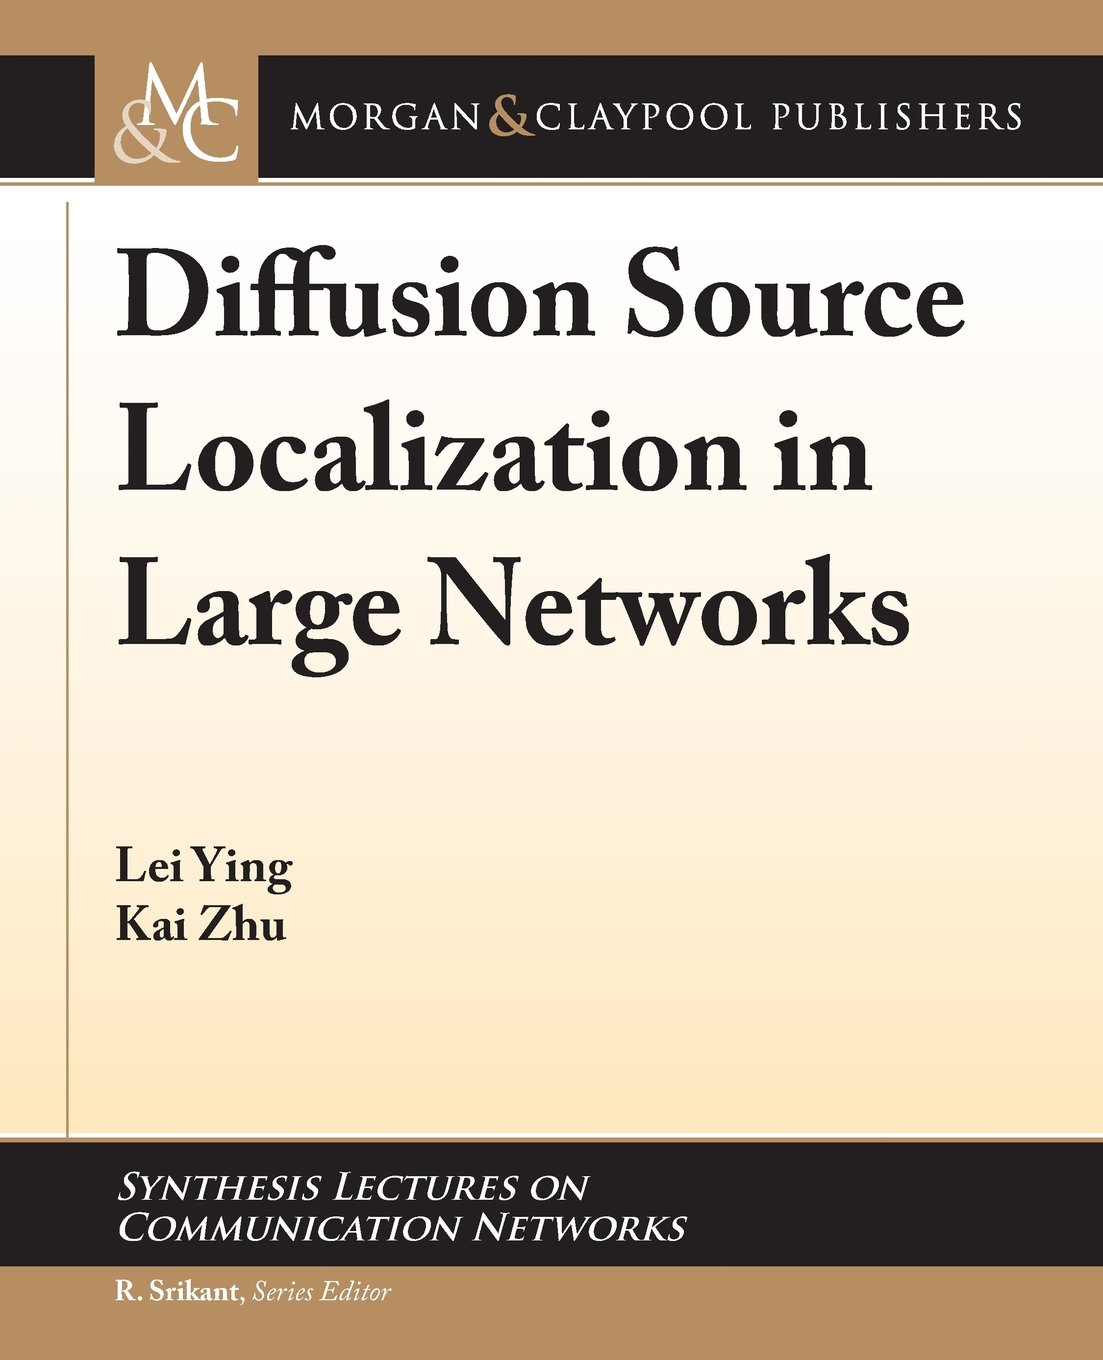 Diffusion Source Localization in Large Networks (Synthesis Lectures on Communication Networks) PDF